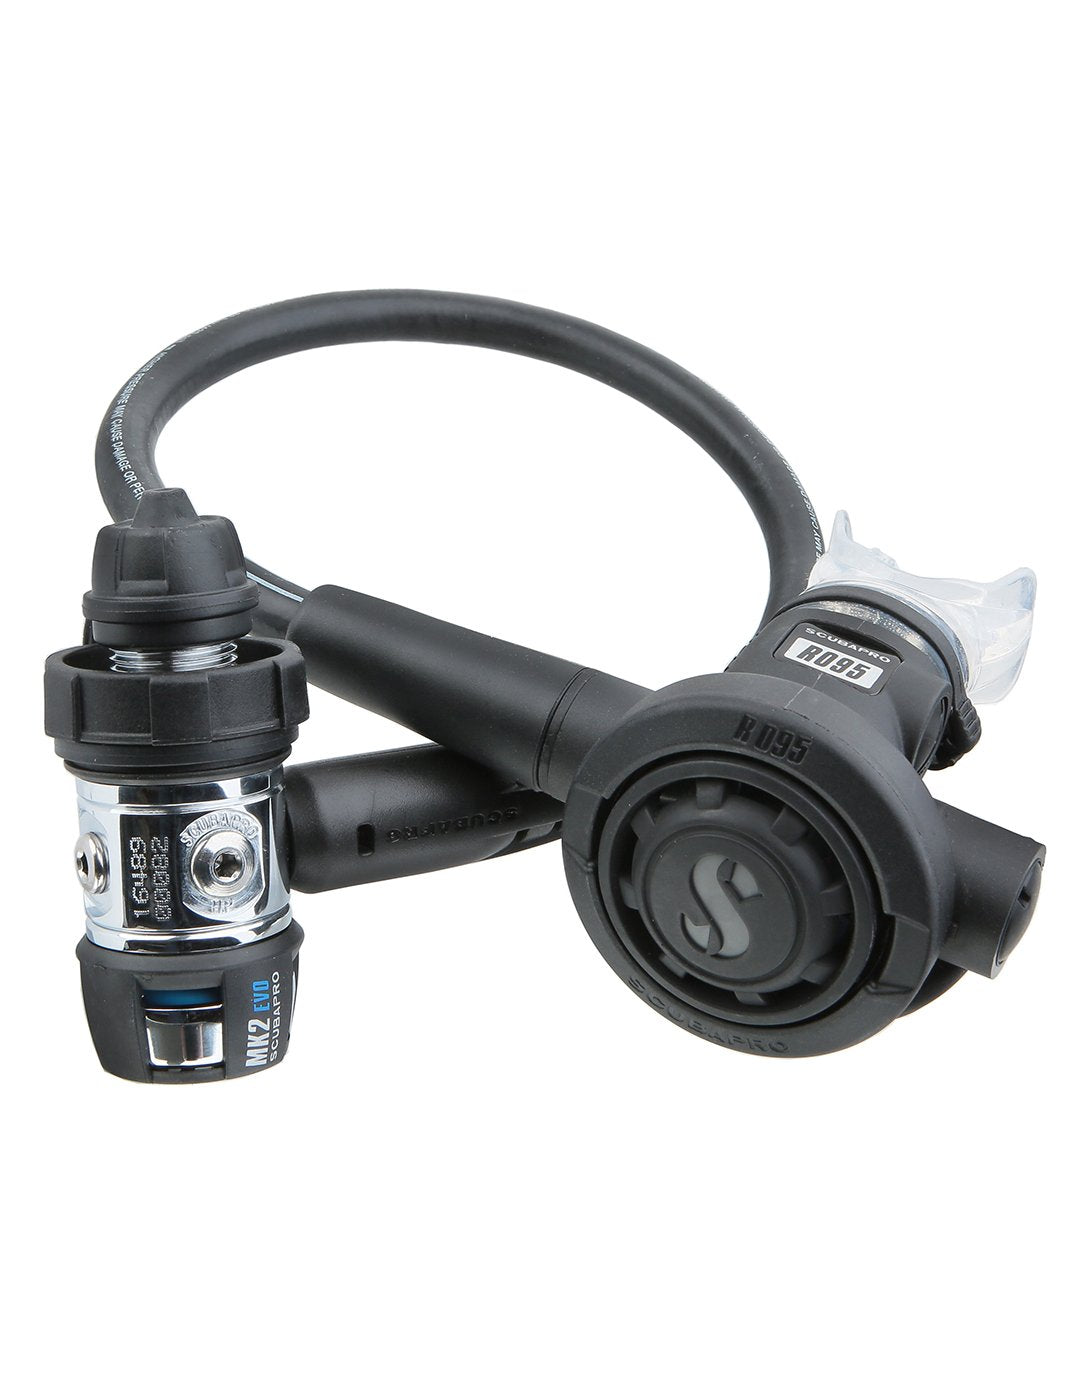 Image of Scubapro Mk2 R095 Kids Regulator